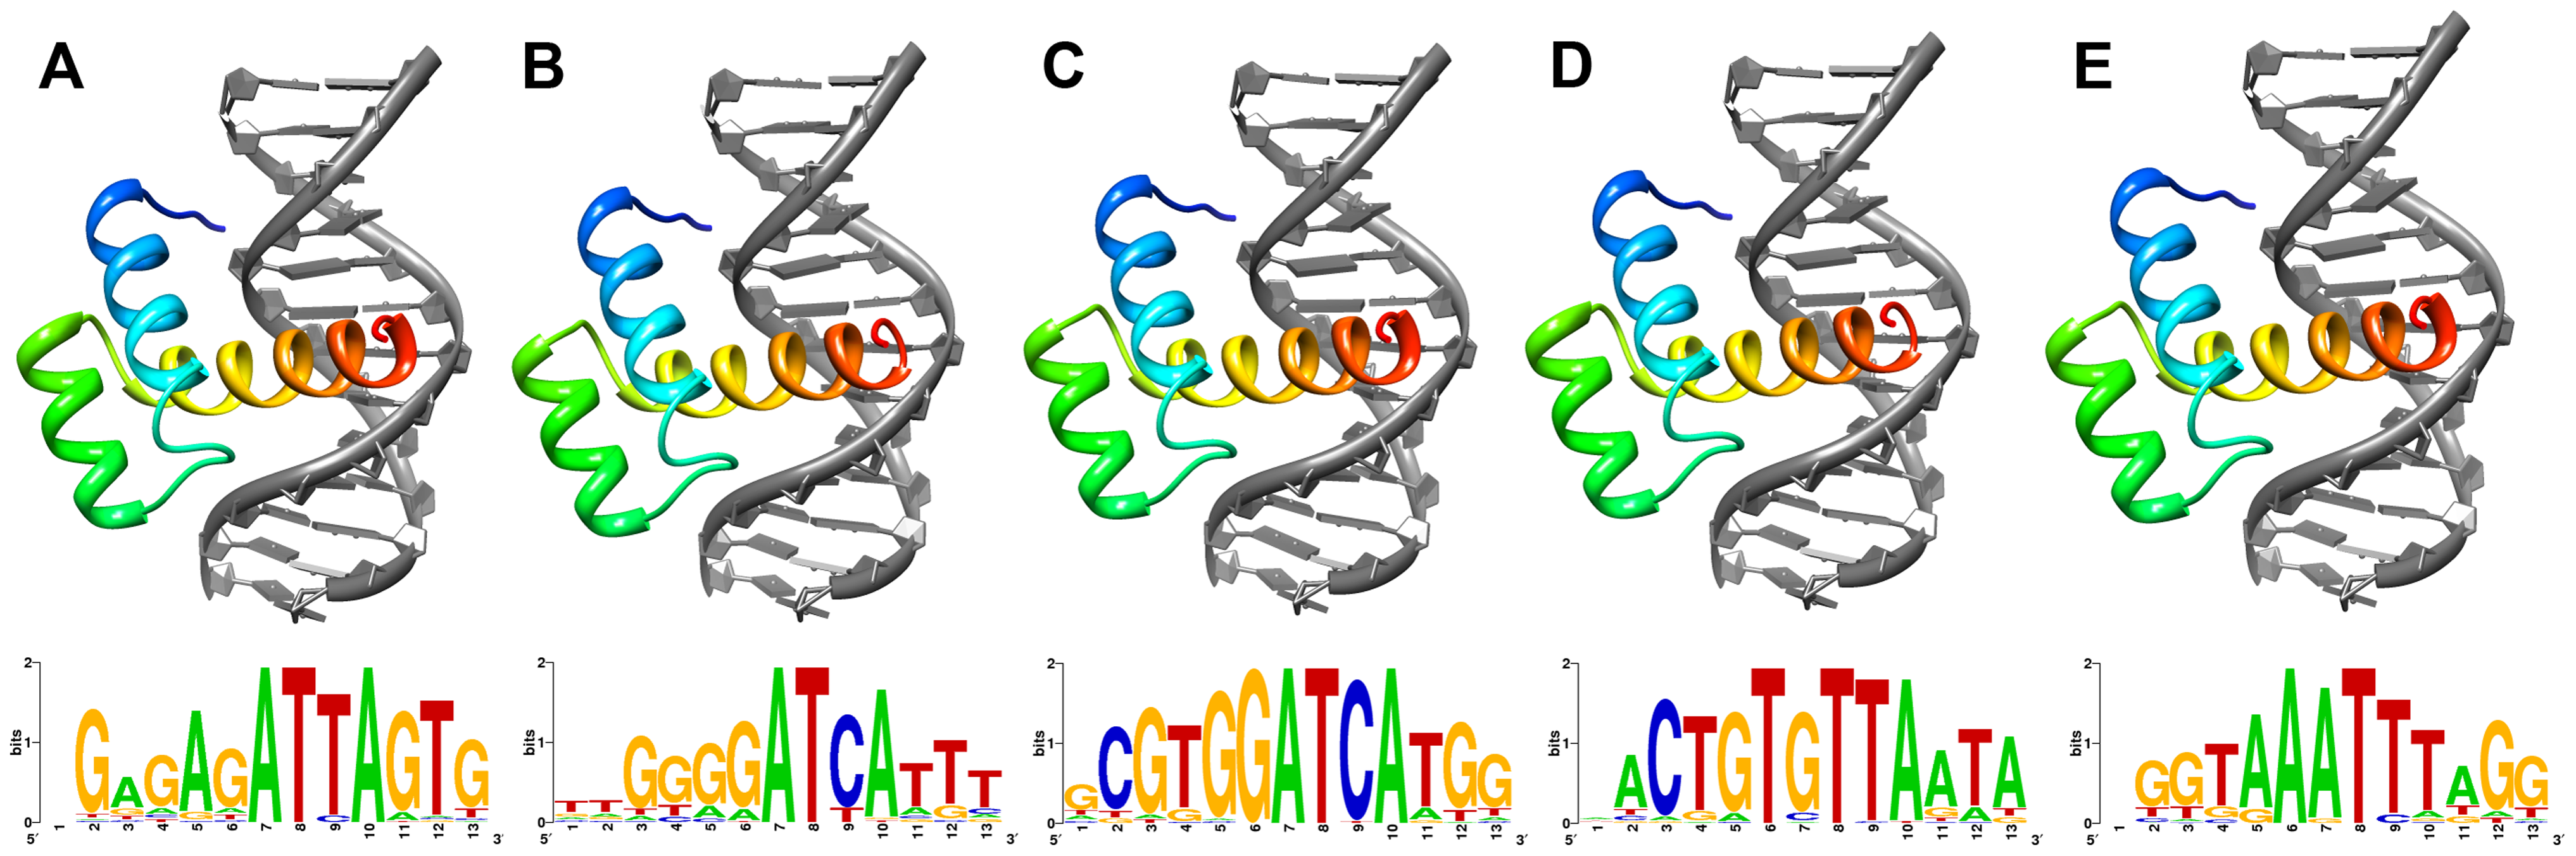 Lowest energy structural models of deduced (A) ShxA, (B) ShxB, (C) ShxC, (D) ShxD and (E) zen homeodomains from Speckled Wood <i>Pararge aegeria</i> bound to DNA sequences predicted through <i>in silico</i> evolution.